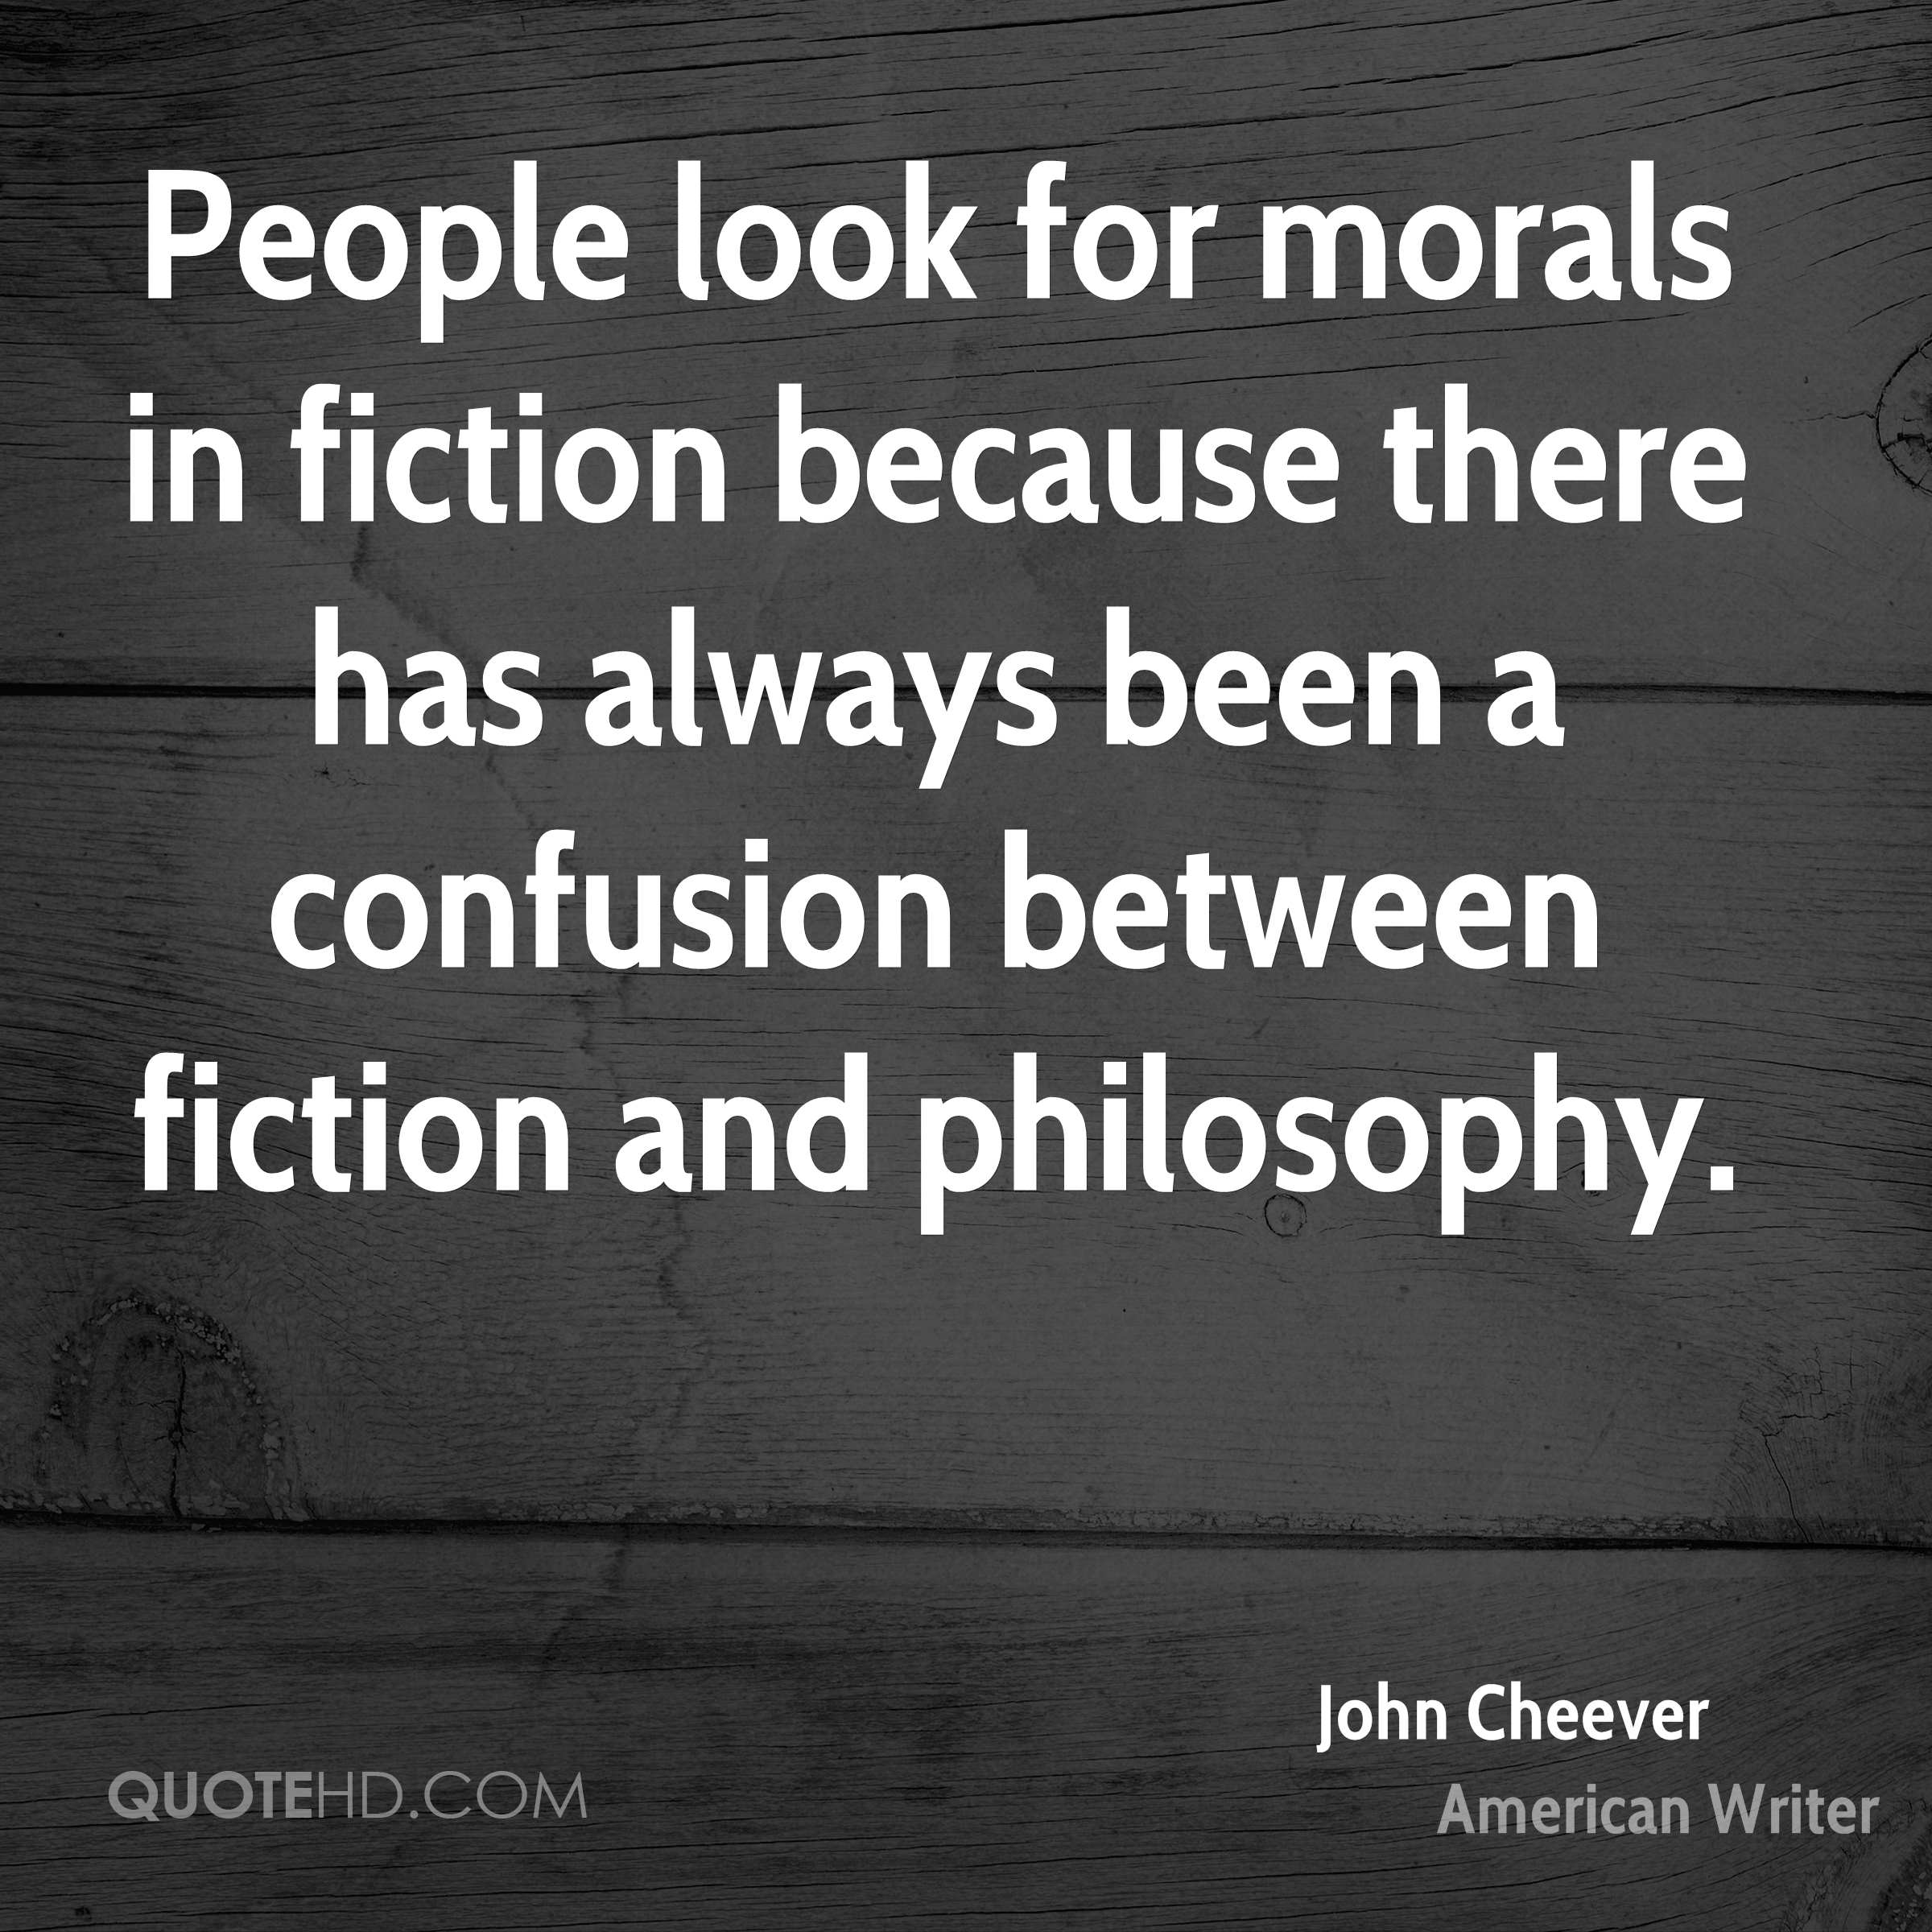 People look for morals in fiction because there has always been a confusion between fiction and philosophy.